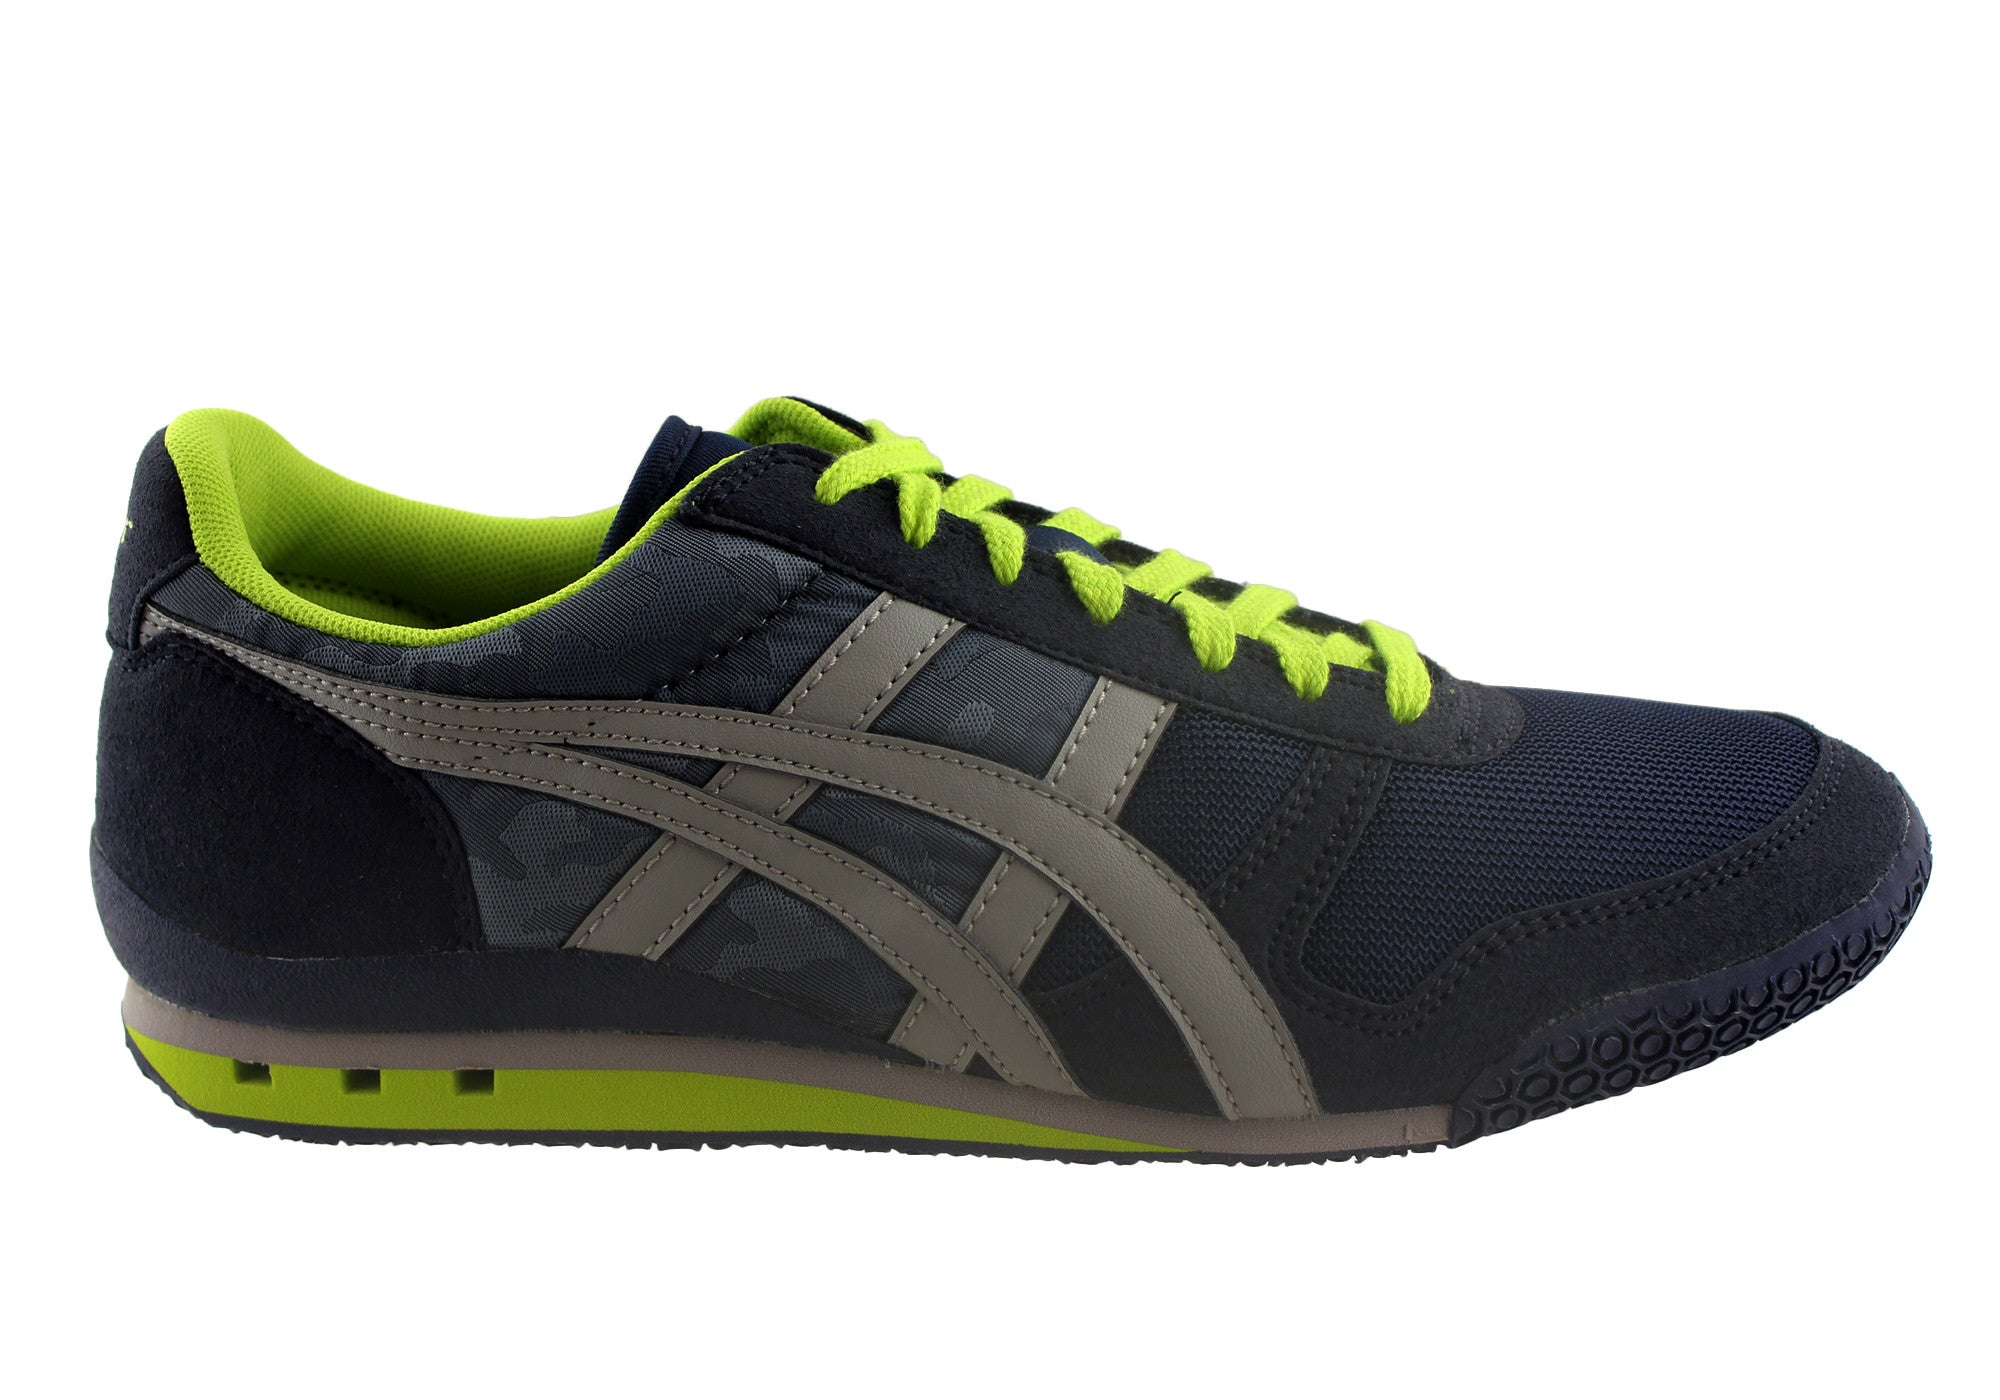 promo code 42981 5c51c Onitsuka Tiger Ultimate 81 Mens Lace Up Casual Shoes